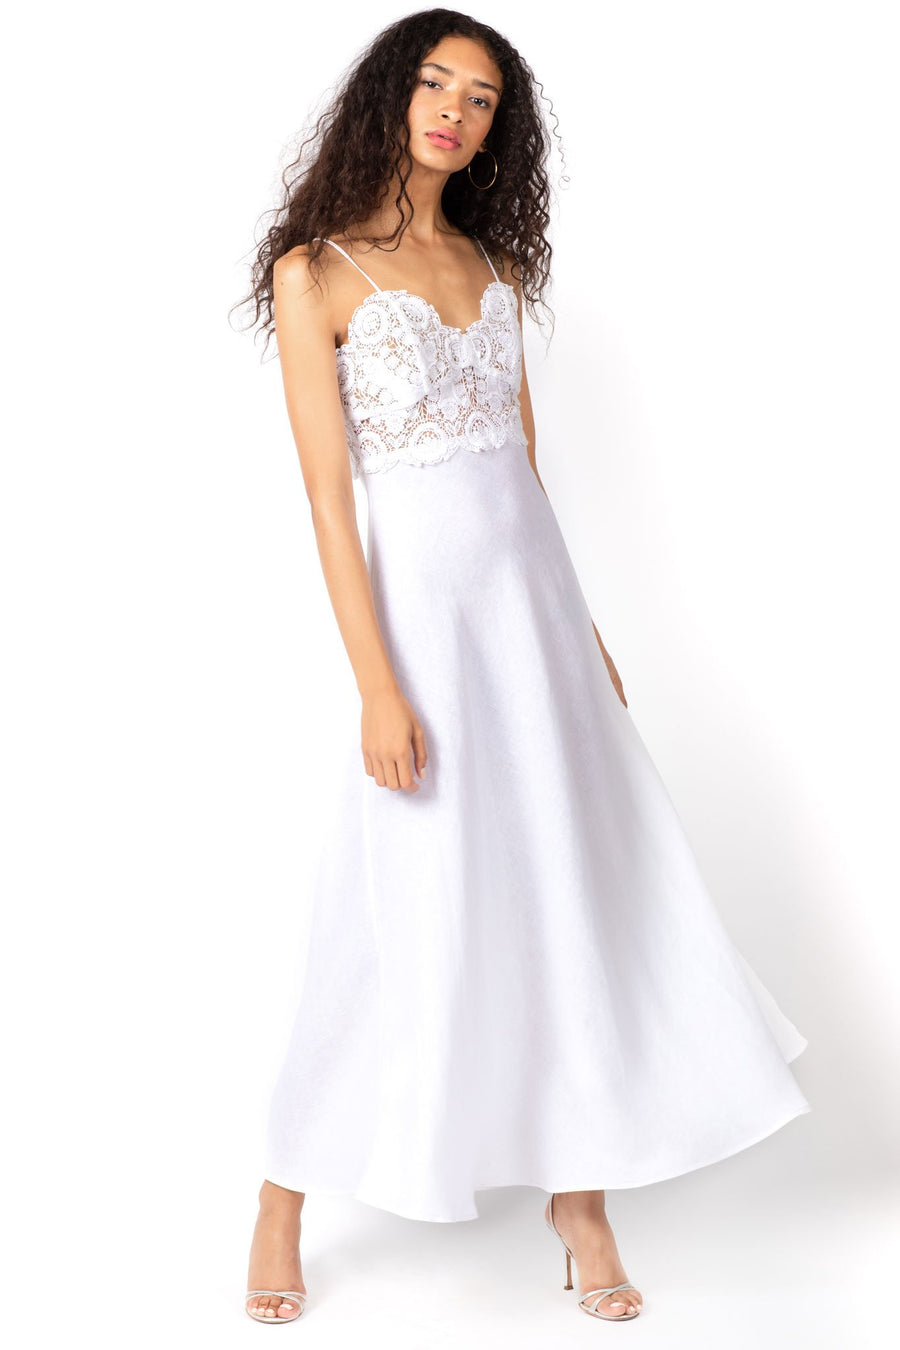 This is a photo of a woman wearing a floor length, pure white, linen and lace dress. The dress has spaghetti straps and a fully lace bodice, with a flowing linen skirt.